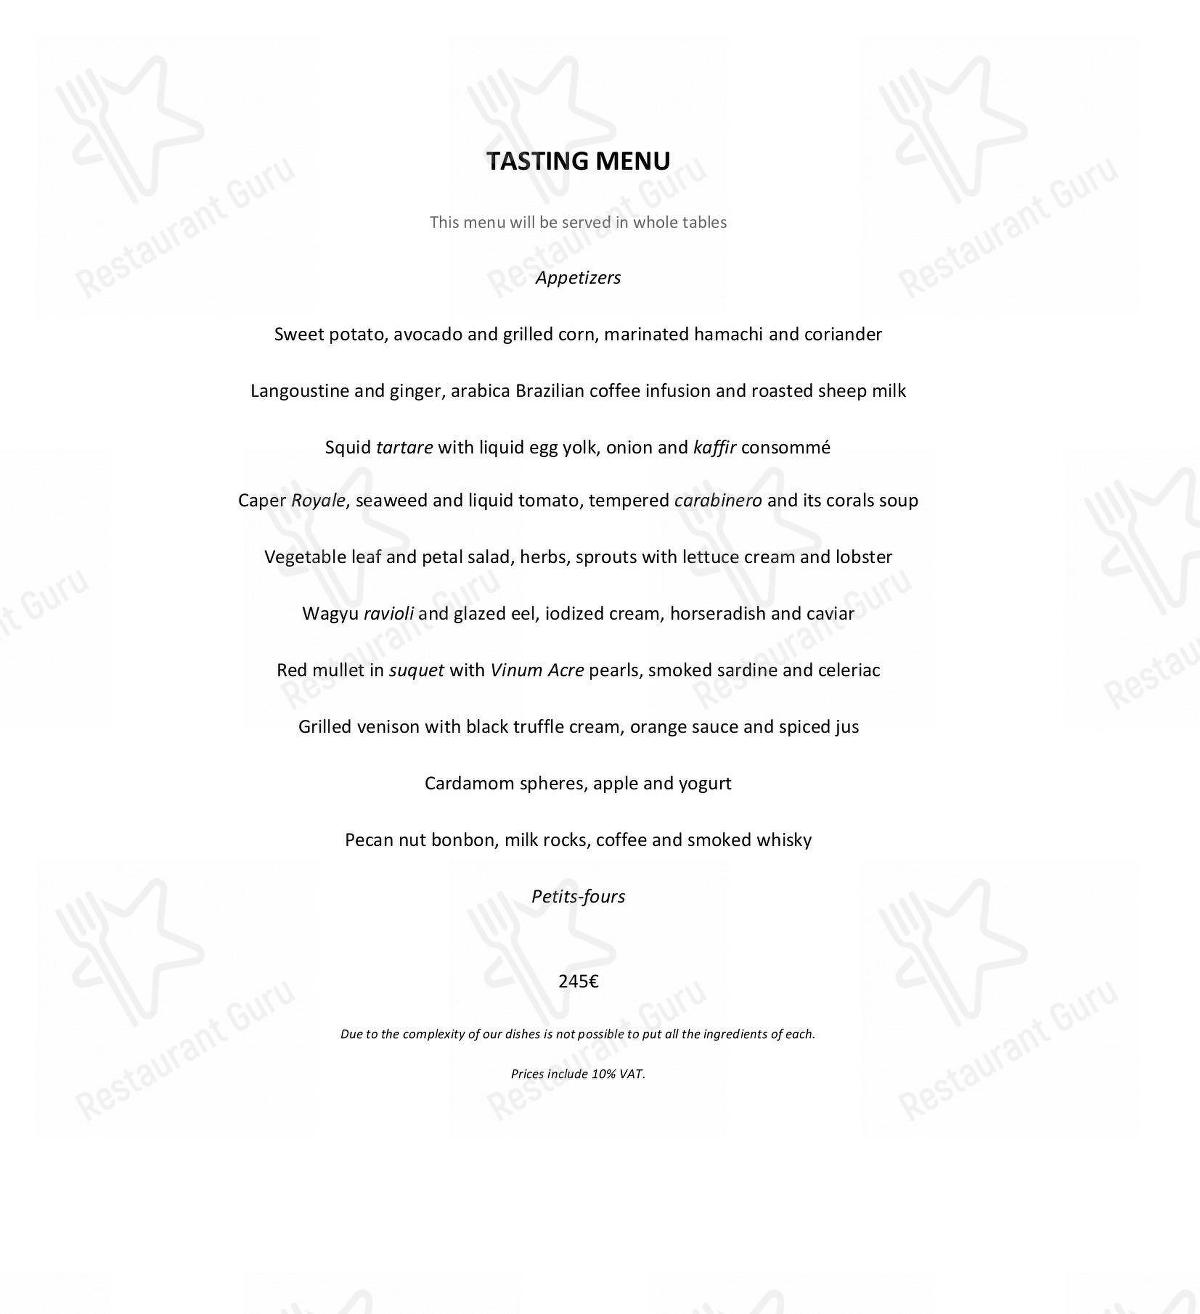 Check out the menu for Lasarte